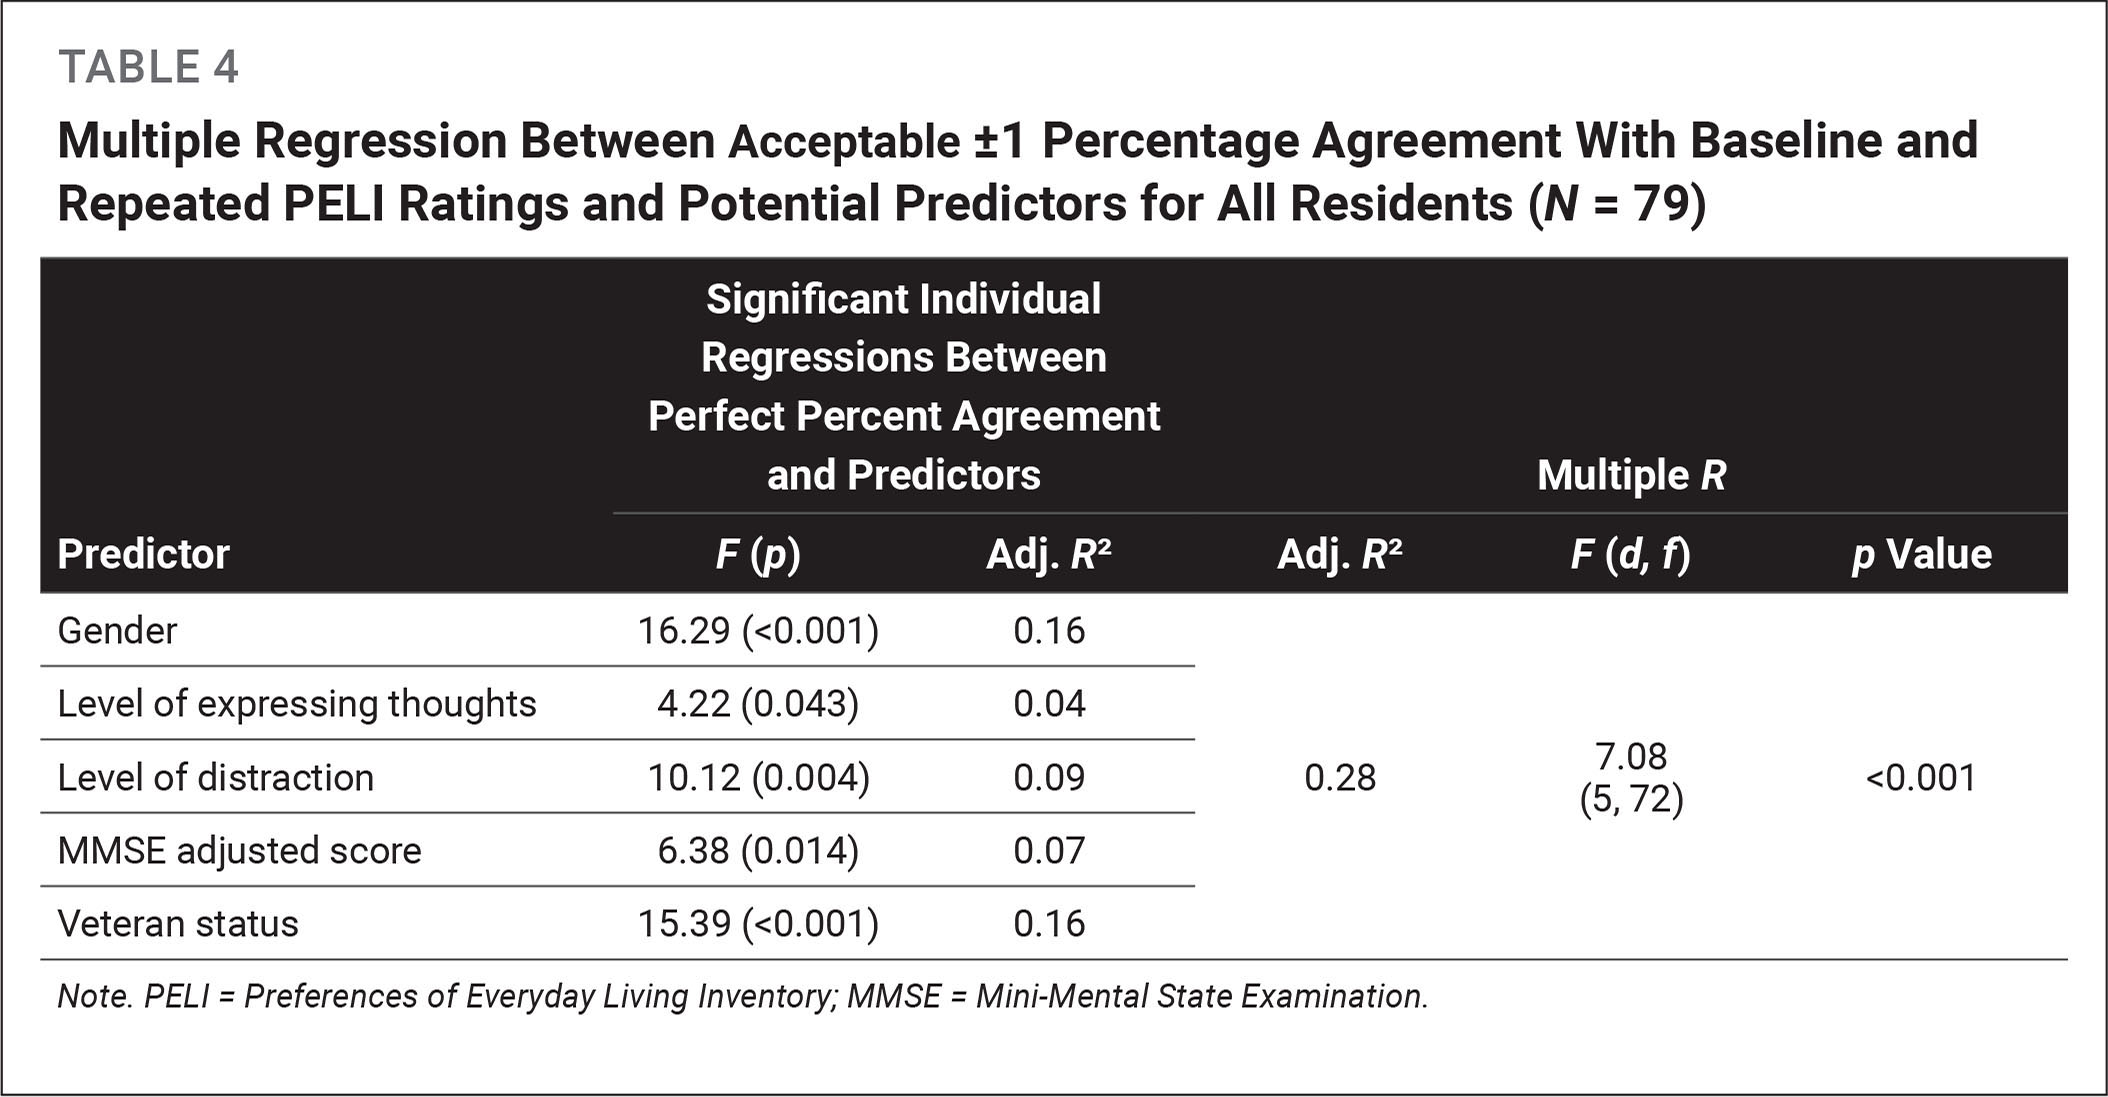 Multiple Regression Between Acceptable ±1 Percentage Agreement With Baseline and Repeated PELI Ratings and Potential Predictors for All Residents (N = 79)